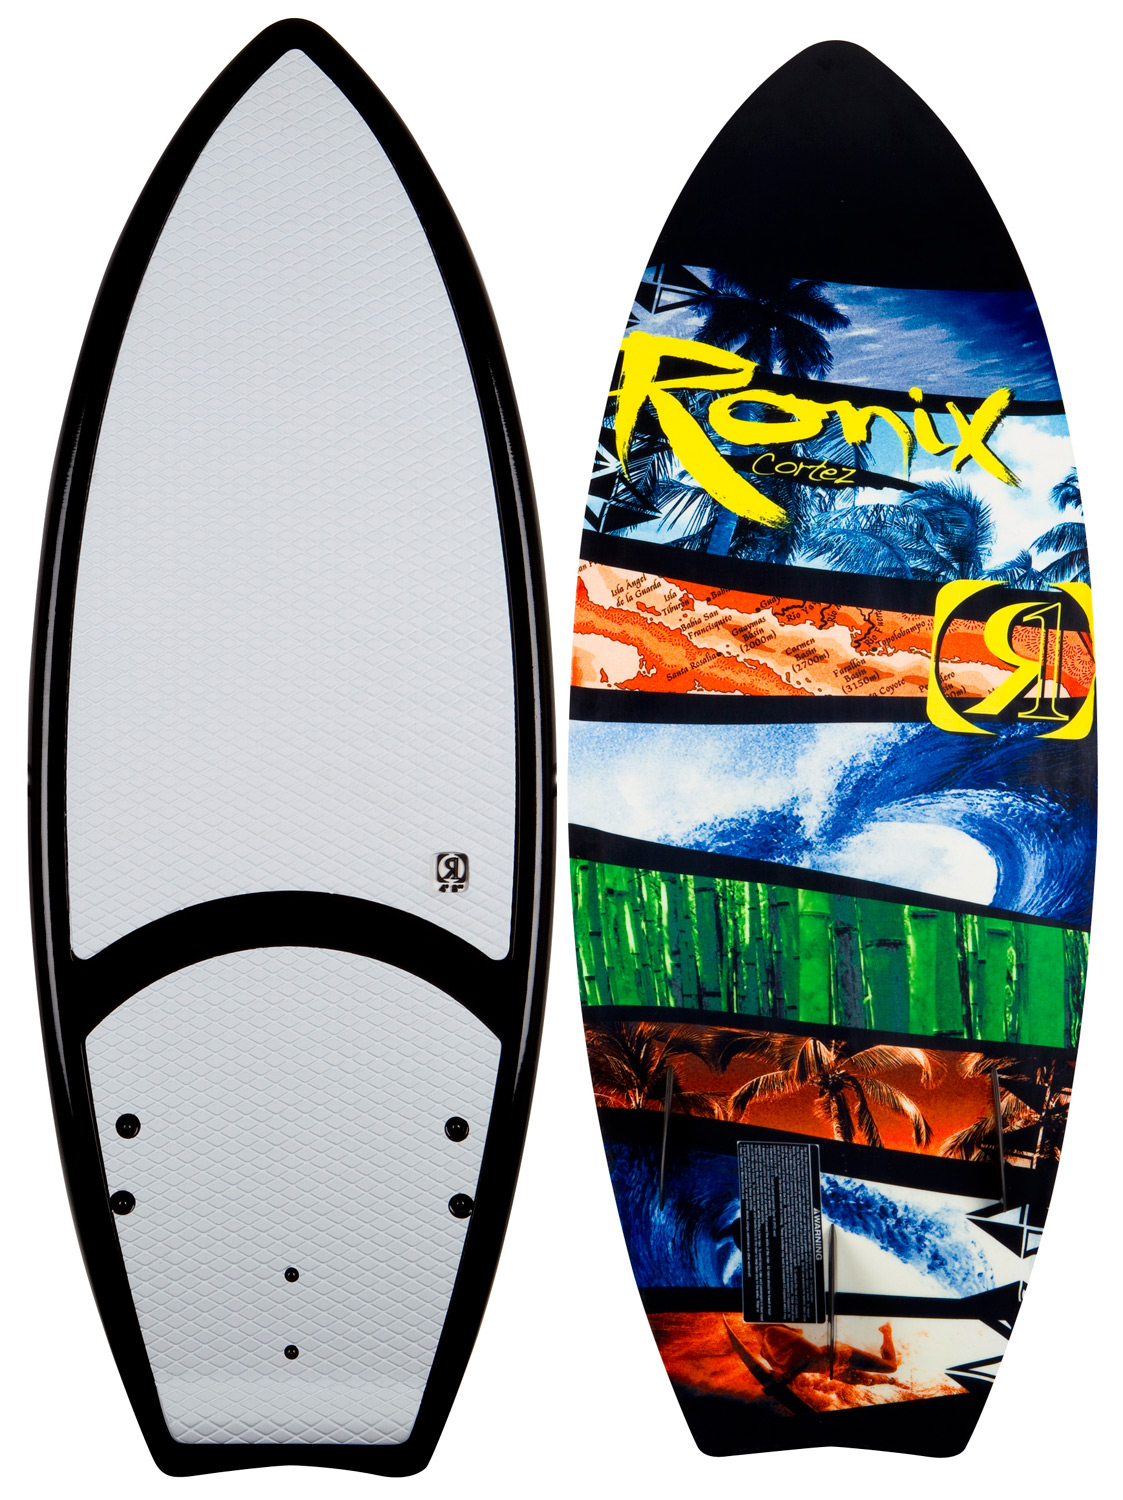 "Surf New for this year, is a women's wakeboard constructed, durable yet still lightweight surfer from the originators of the first compression molded wake surfboard. A versatile subtle swallowtail design for toes on the nose stability, frontside airs off the lip performance and big cutbacks on the wake. The 4'8"" is perfect for female shredders looking at a performance deck on small-to-large size freshwater barrels. The fish shape tri-fin series delivers on the rail maneuverability with a speedy rocker line to keep a surfer tight in the line of a wake.Key Features of the Ronix Cortez Wakesurf Board: EVA top deck with built in tail wedge for more power into a turn Variable rail design - sharper bevel/rail in the tail for a quicker edge transfer and a mellower more stable bevel/rail blending to the front of the board for a floatier, more forgiving feel Krypto Cable - makes the sidewall the strongest part of the board - not the weakest, along with a torsionally stiffer board Mod Pour Foam - this demanding alternative core made from our exclusive blend of atoms Monocoque - a wrapped glass from the top to the bottom so the flash line is no longer the weak point of the board - but the strongest. 3 surf specific designed fins Oh yeah, designed by Herb - $263.95"